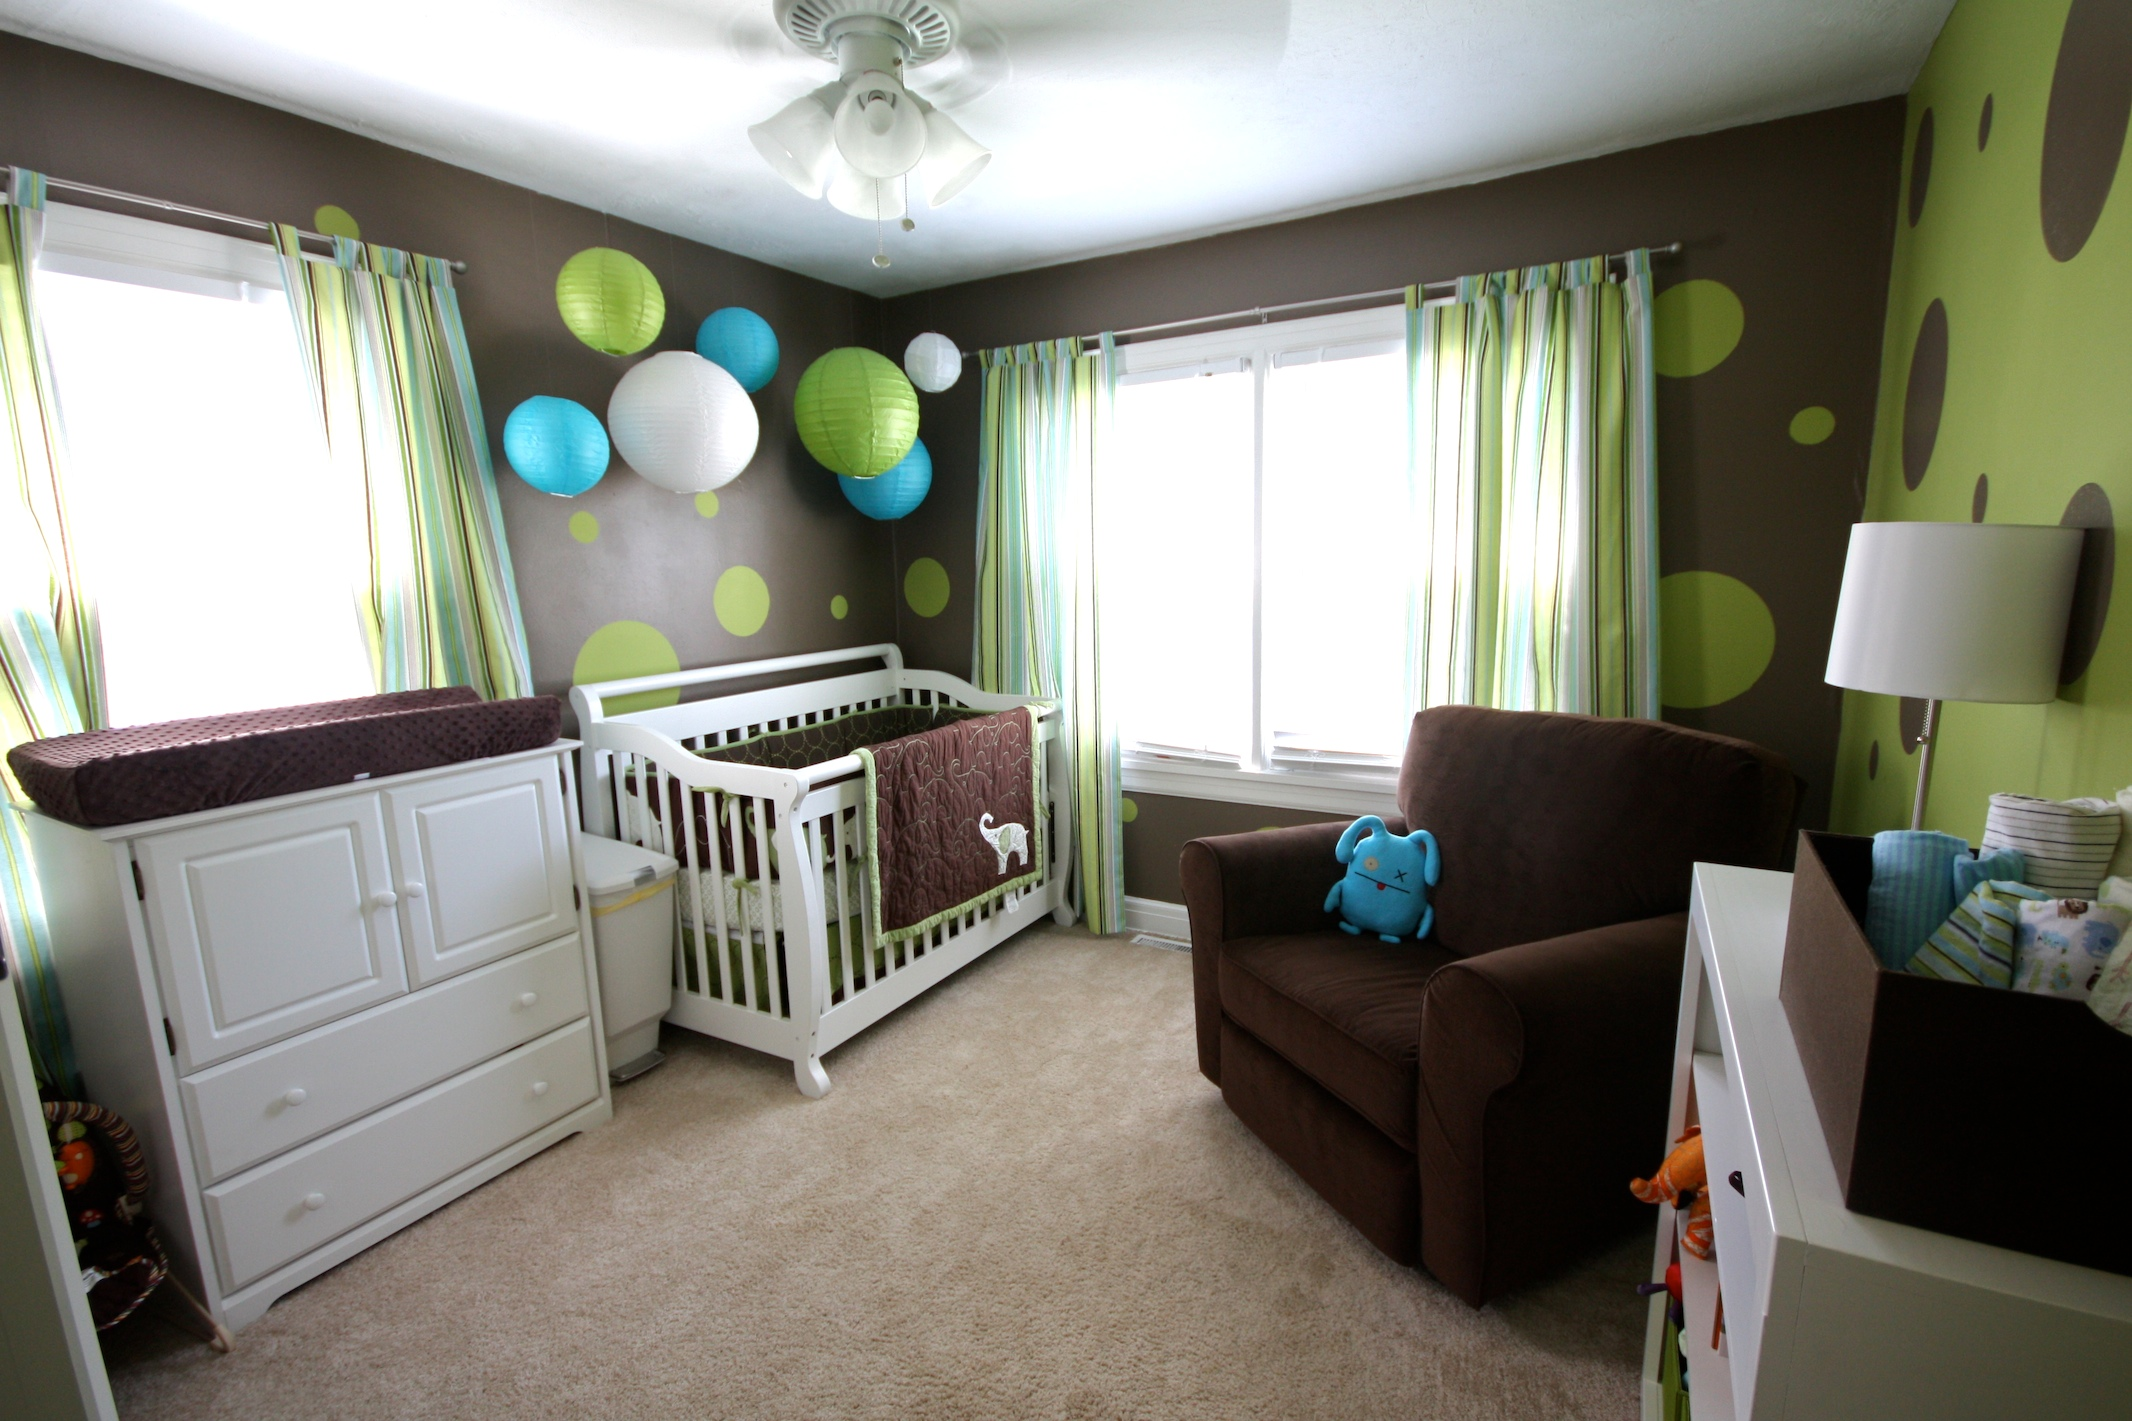 http://www.home-designing.com/wp-content/uploads/2013/03/lime-green-and-chocolate-baby-boys-nursery.jpeg